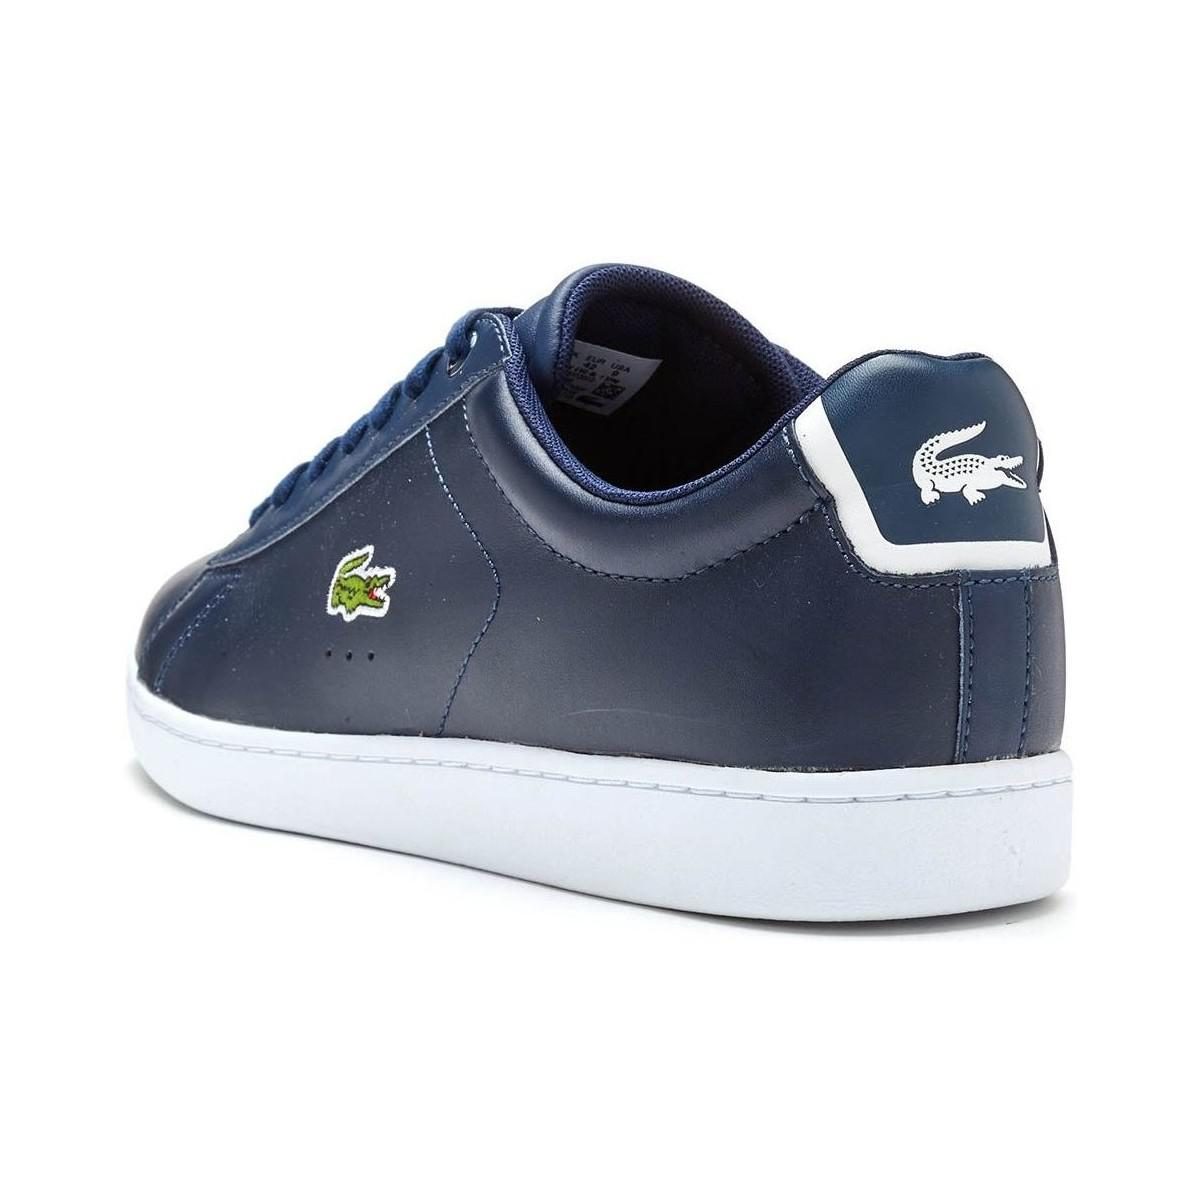 Bl Leather Spm In Evo Lacoste Carnaby Trainers Blue 1 Navy f7bYg6yv